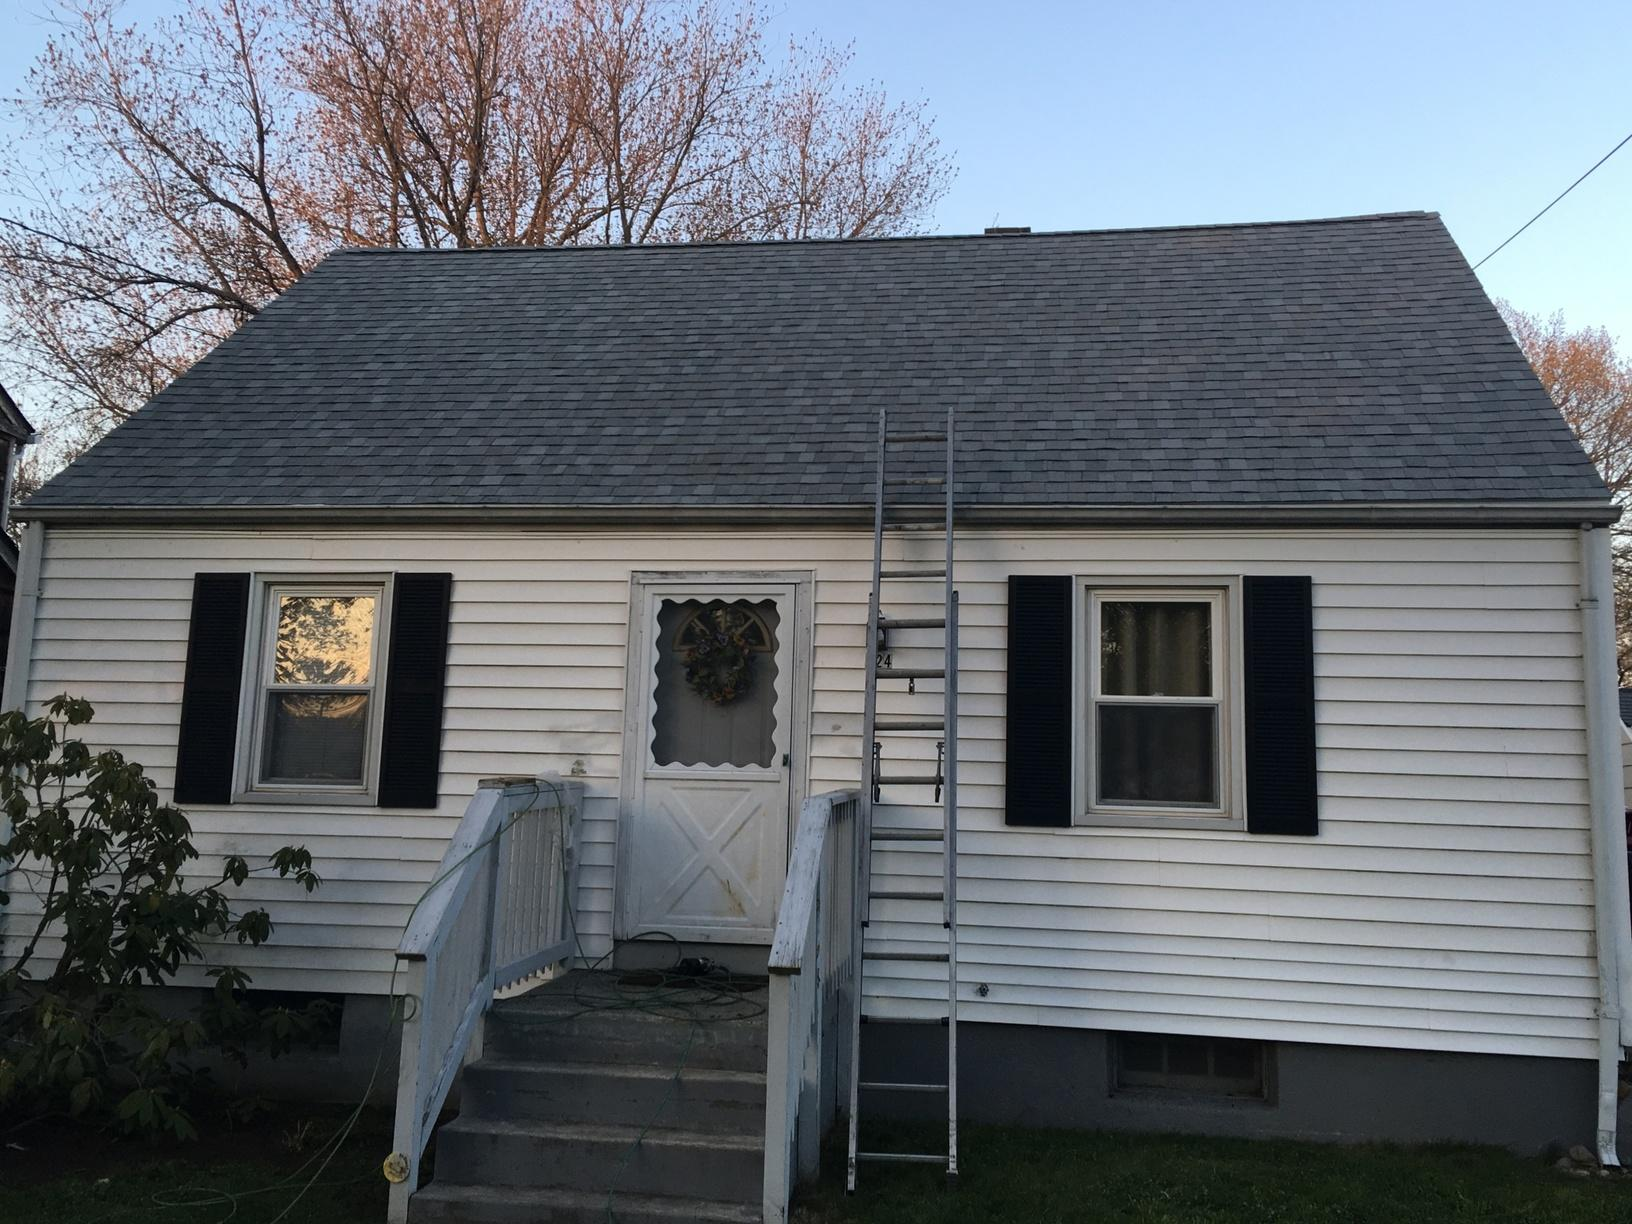 Roof and Wind Damage - Replacement in Milford CT - After Photo